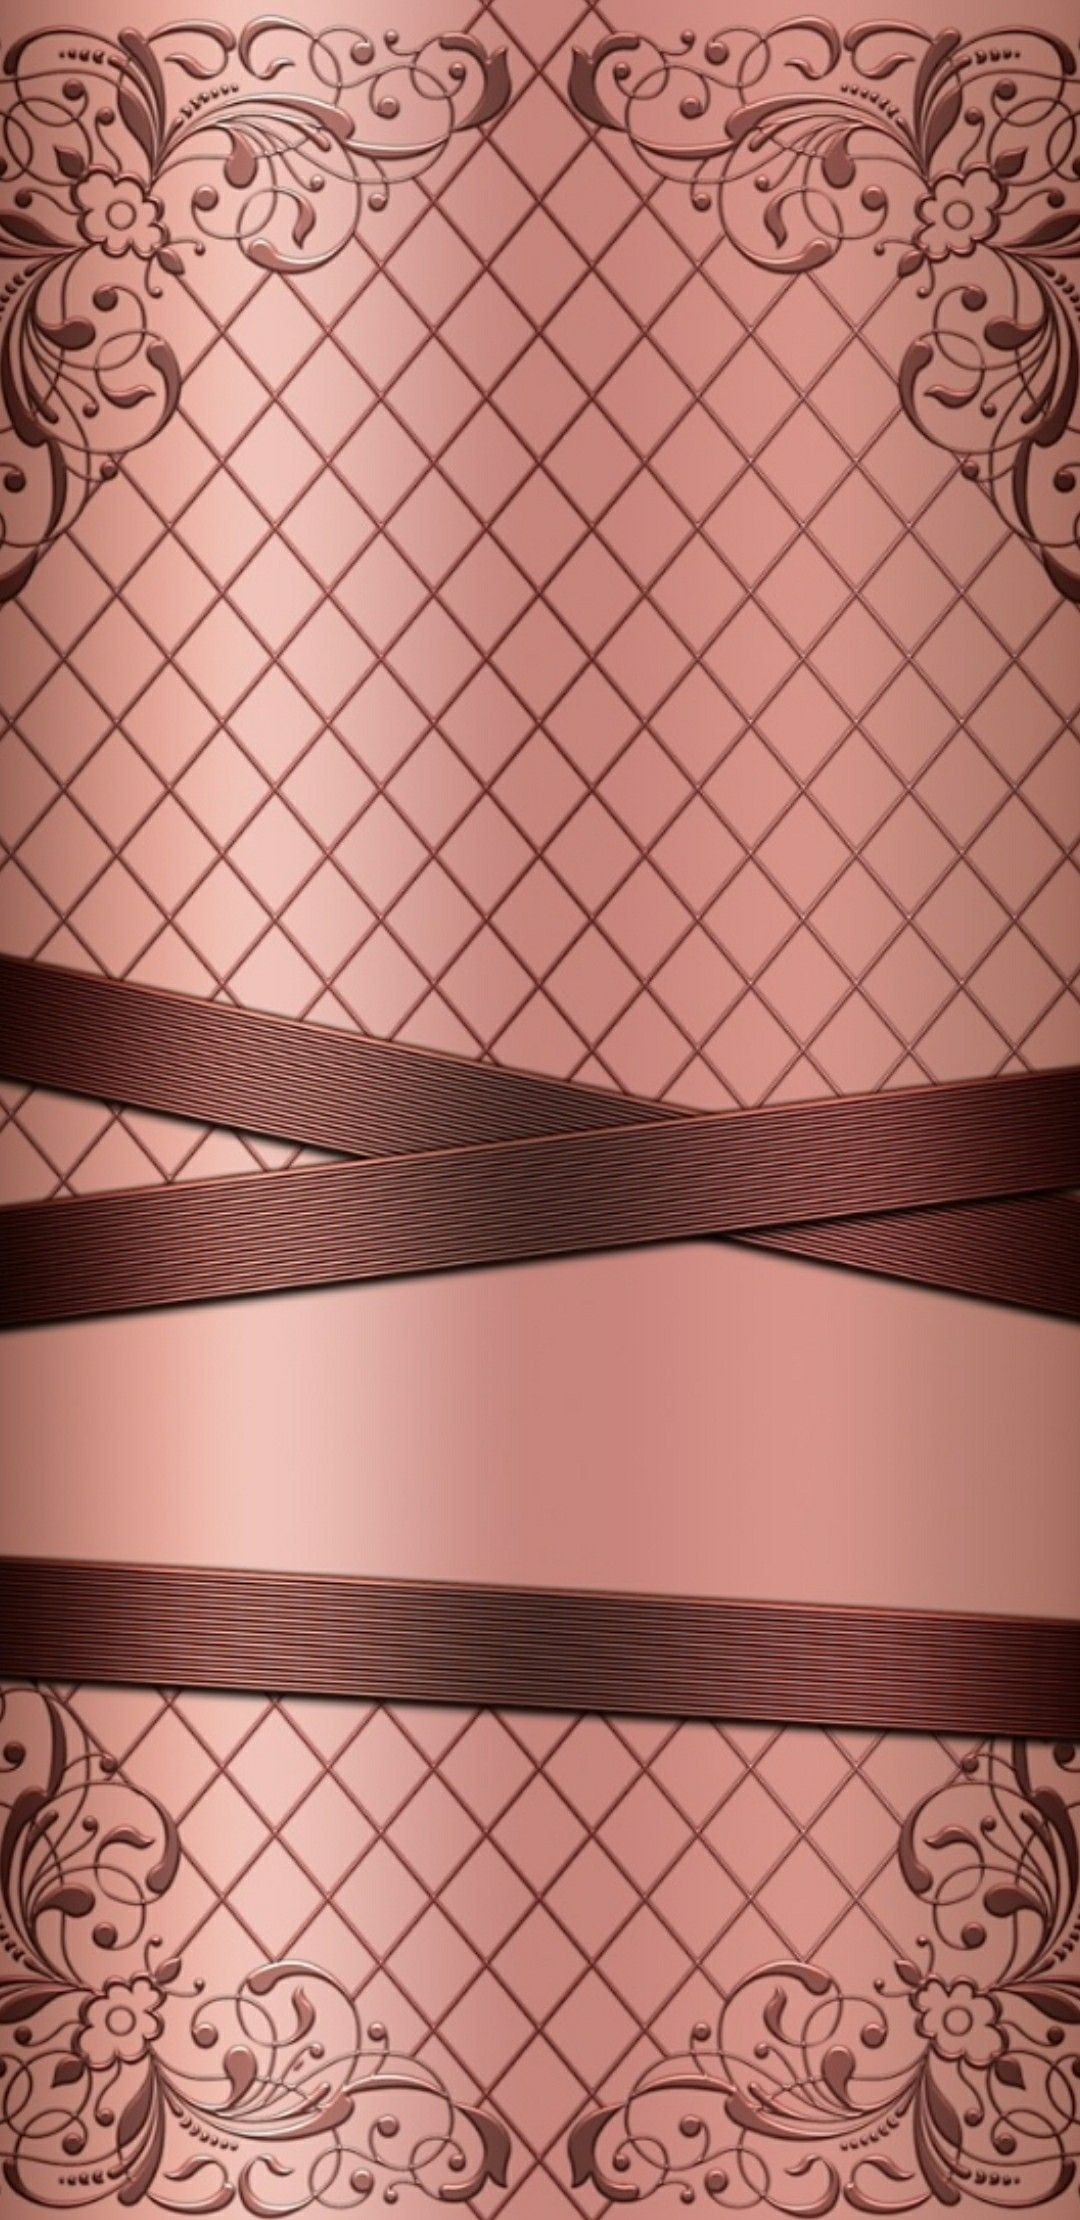 Pin by Rachel on Peach/Rose Gold Rose gold wallpaper